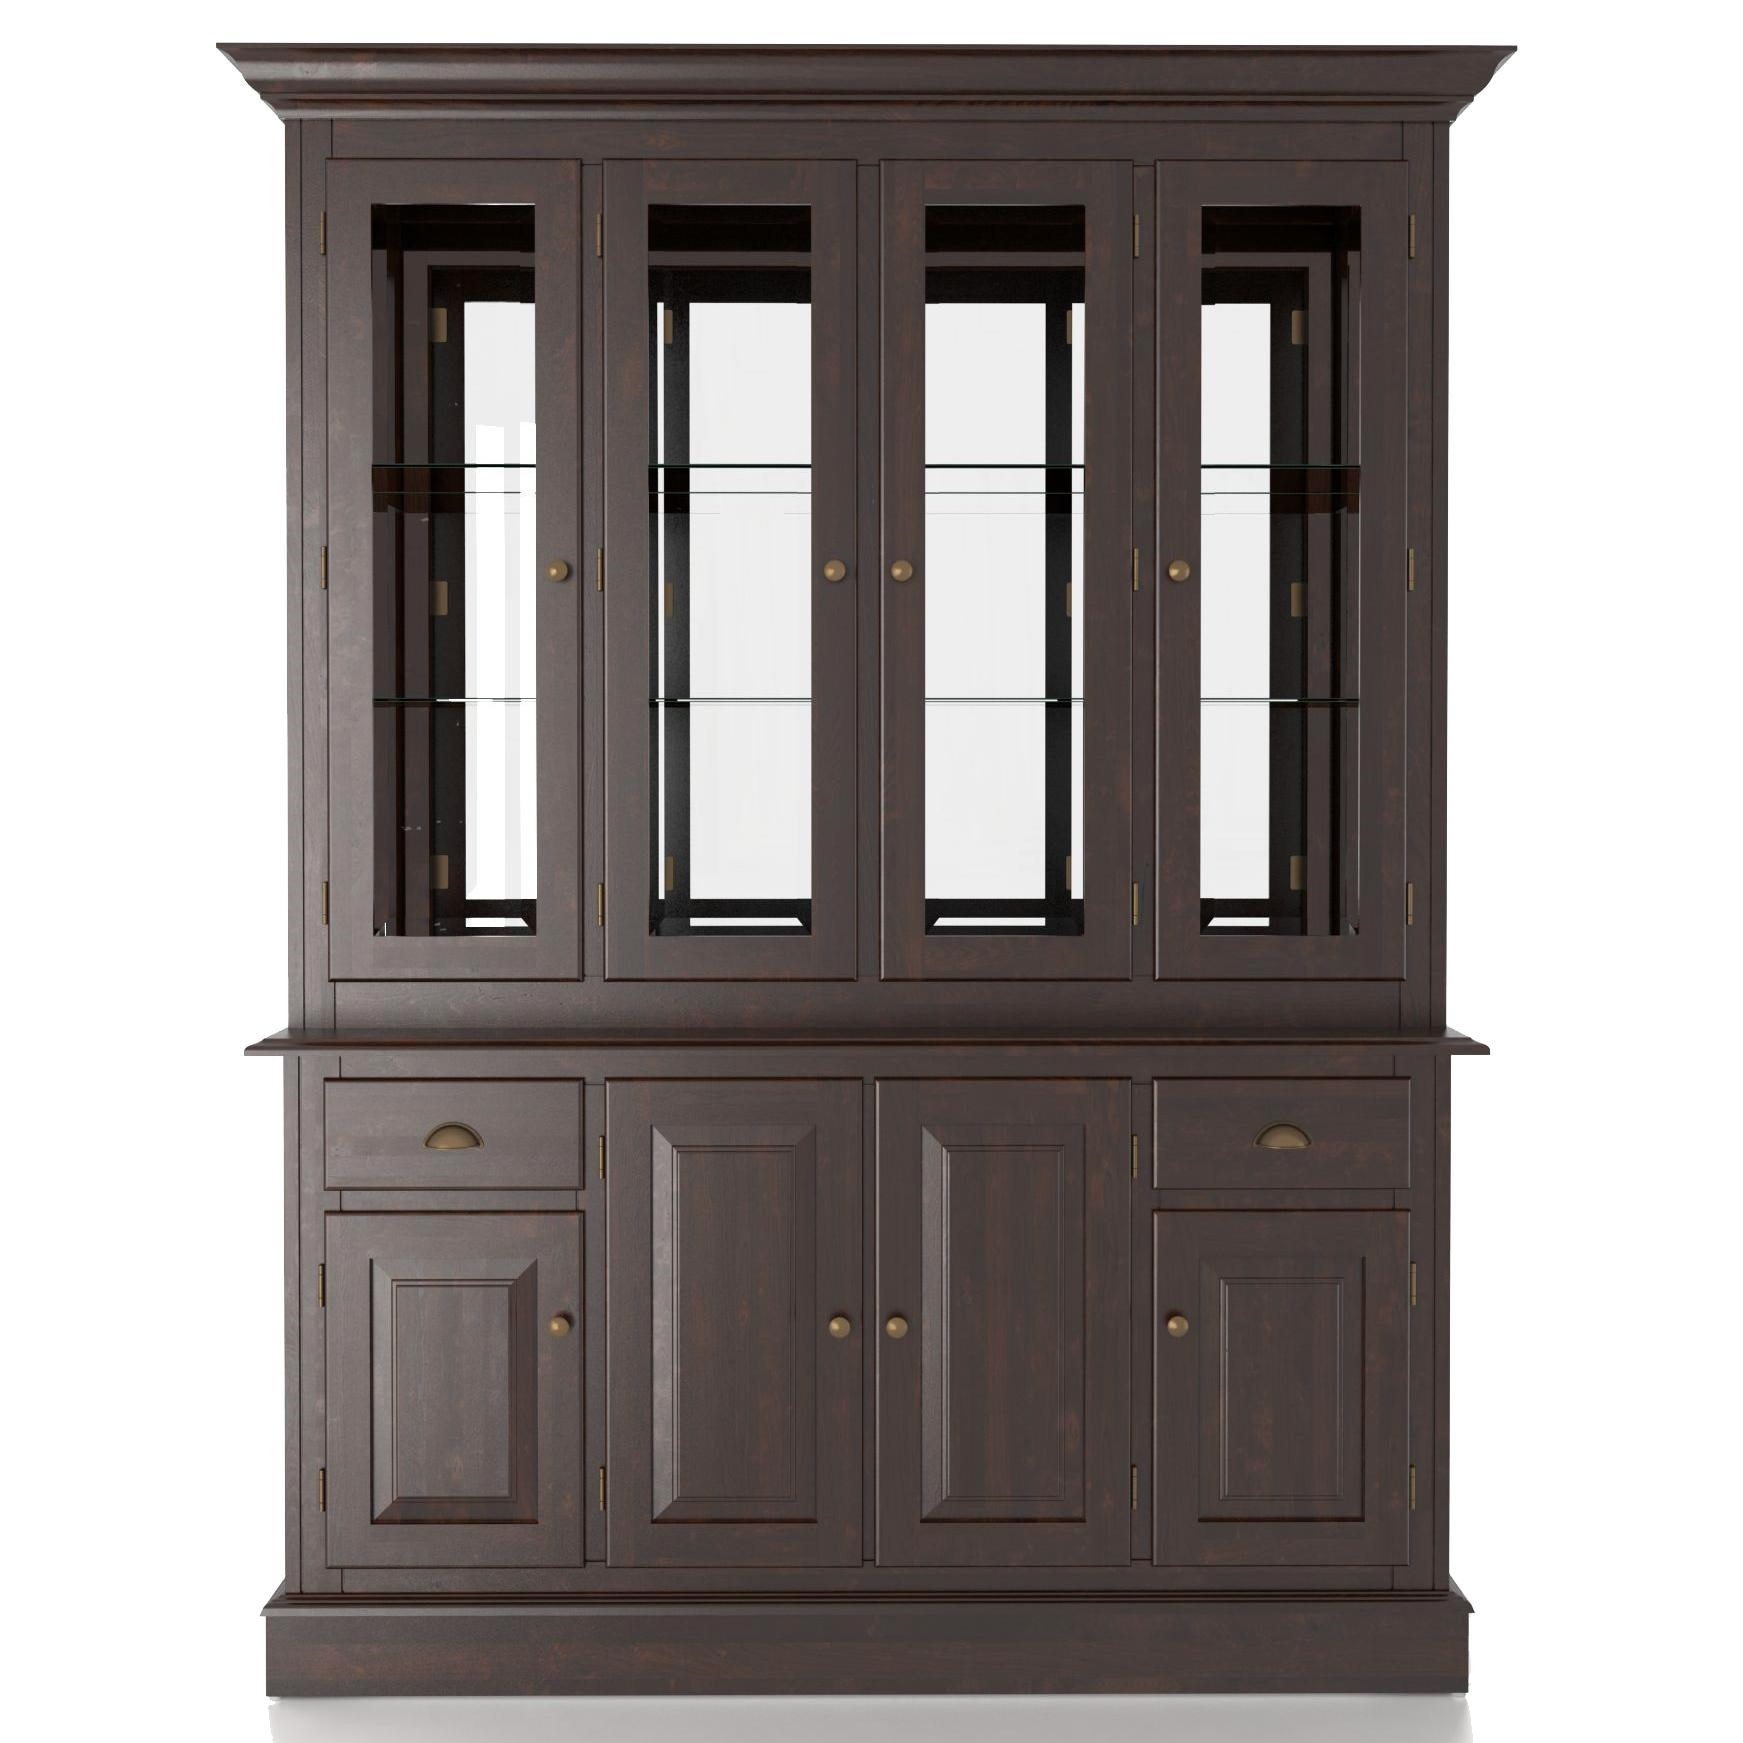 Canadel Custom Dining Customizable 60 Inch Hutch amp Buffet  : products2Fcanadel2Fcolor2Fcustom20dining20furniture20cabuf206002 aa2Bhut206002 aa b2jpgscalebothampwidth500ampheight500ampfsharpen25ampdown from www.jordansfurnishings.com size 500 x 500 jpeg 34kB